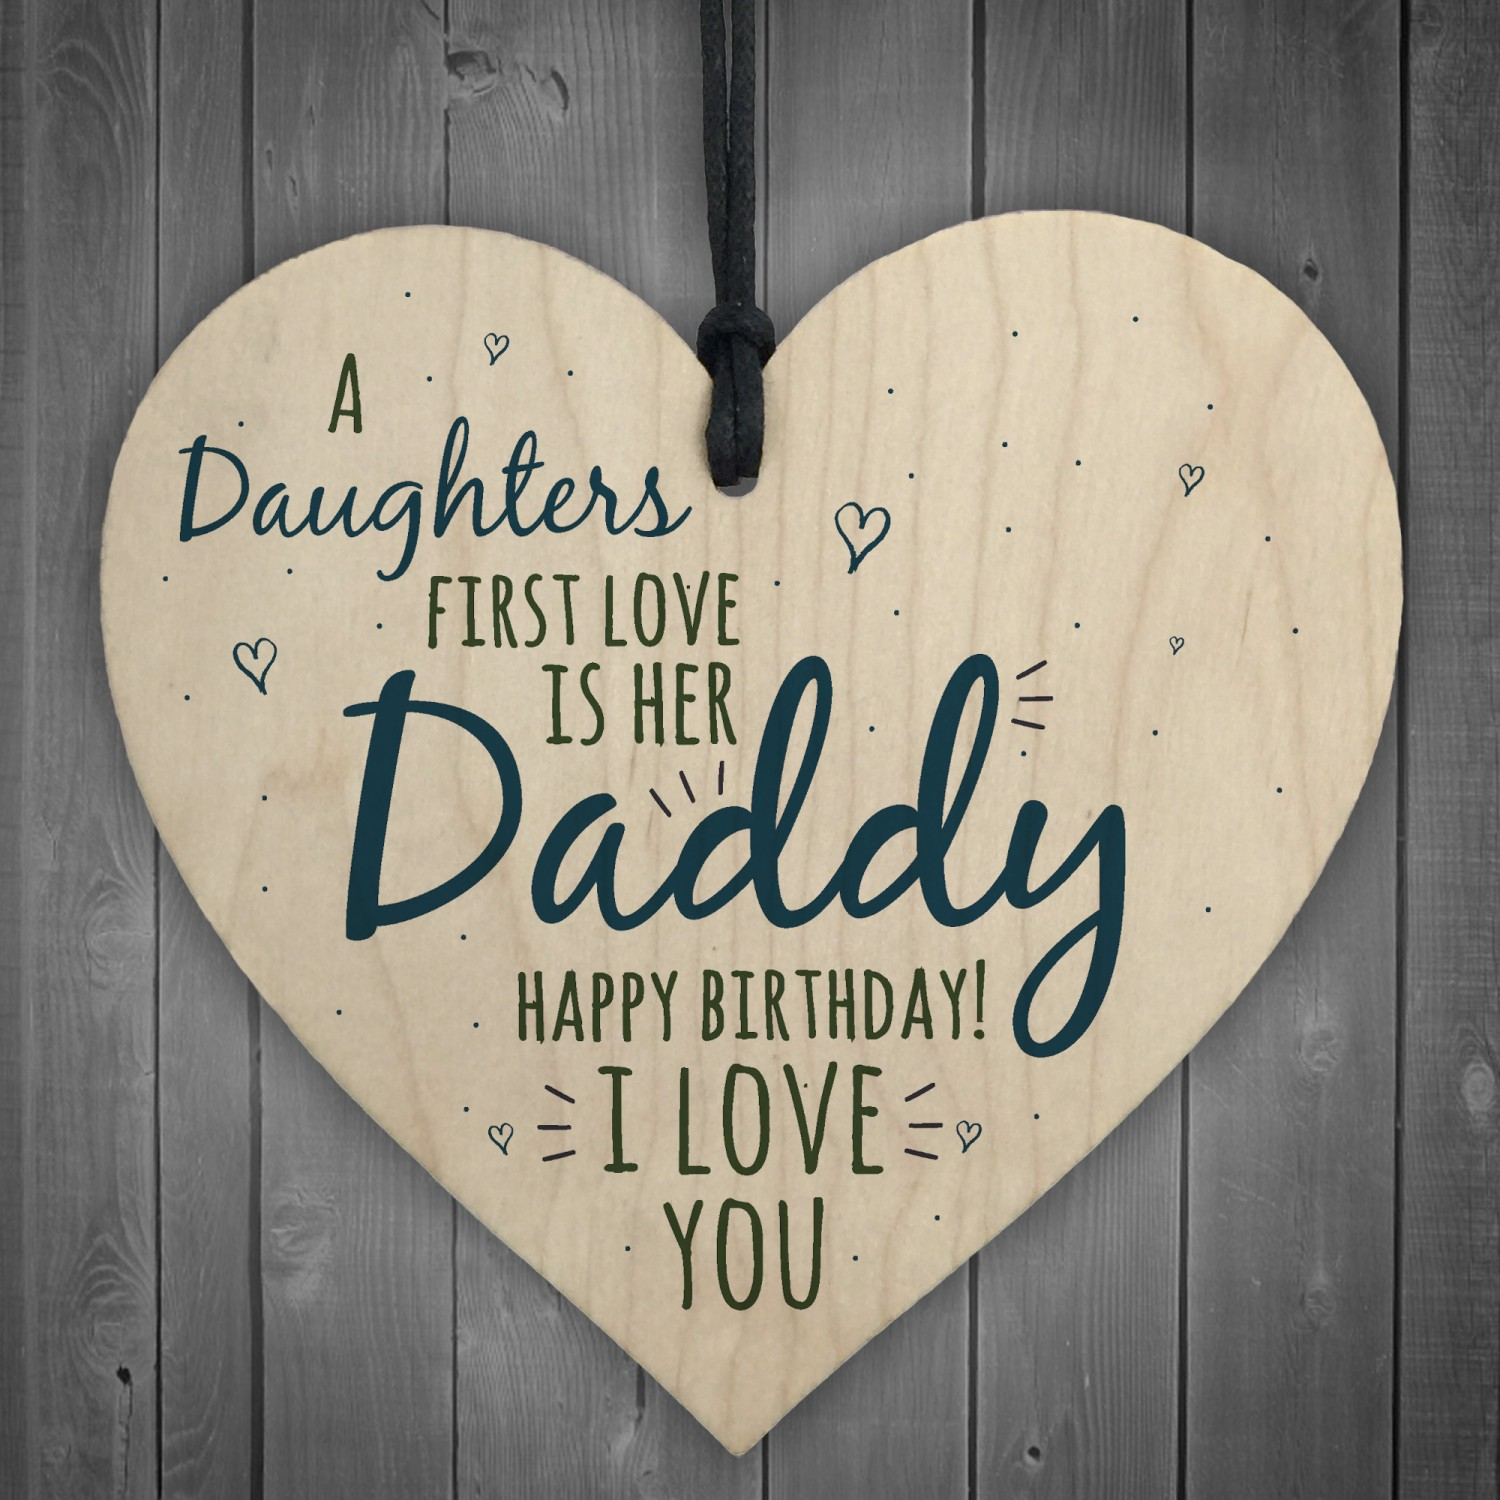 Love Daddy Dad Wooden Heart Happy Birthday Card Gift Son Baby